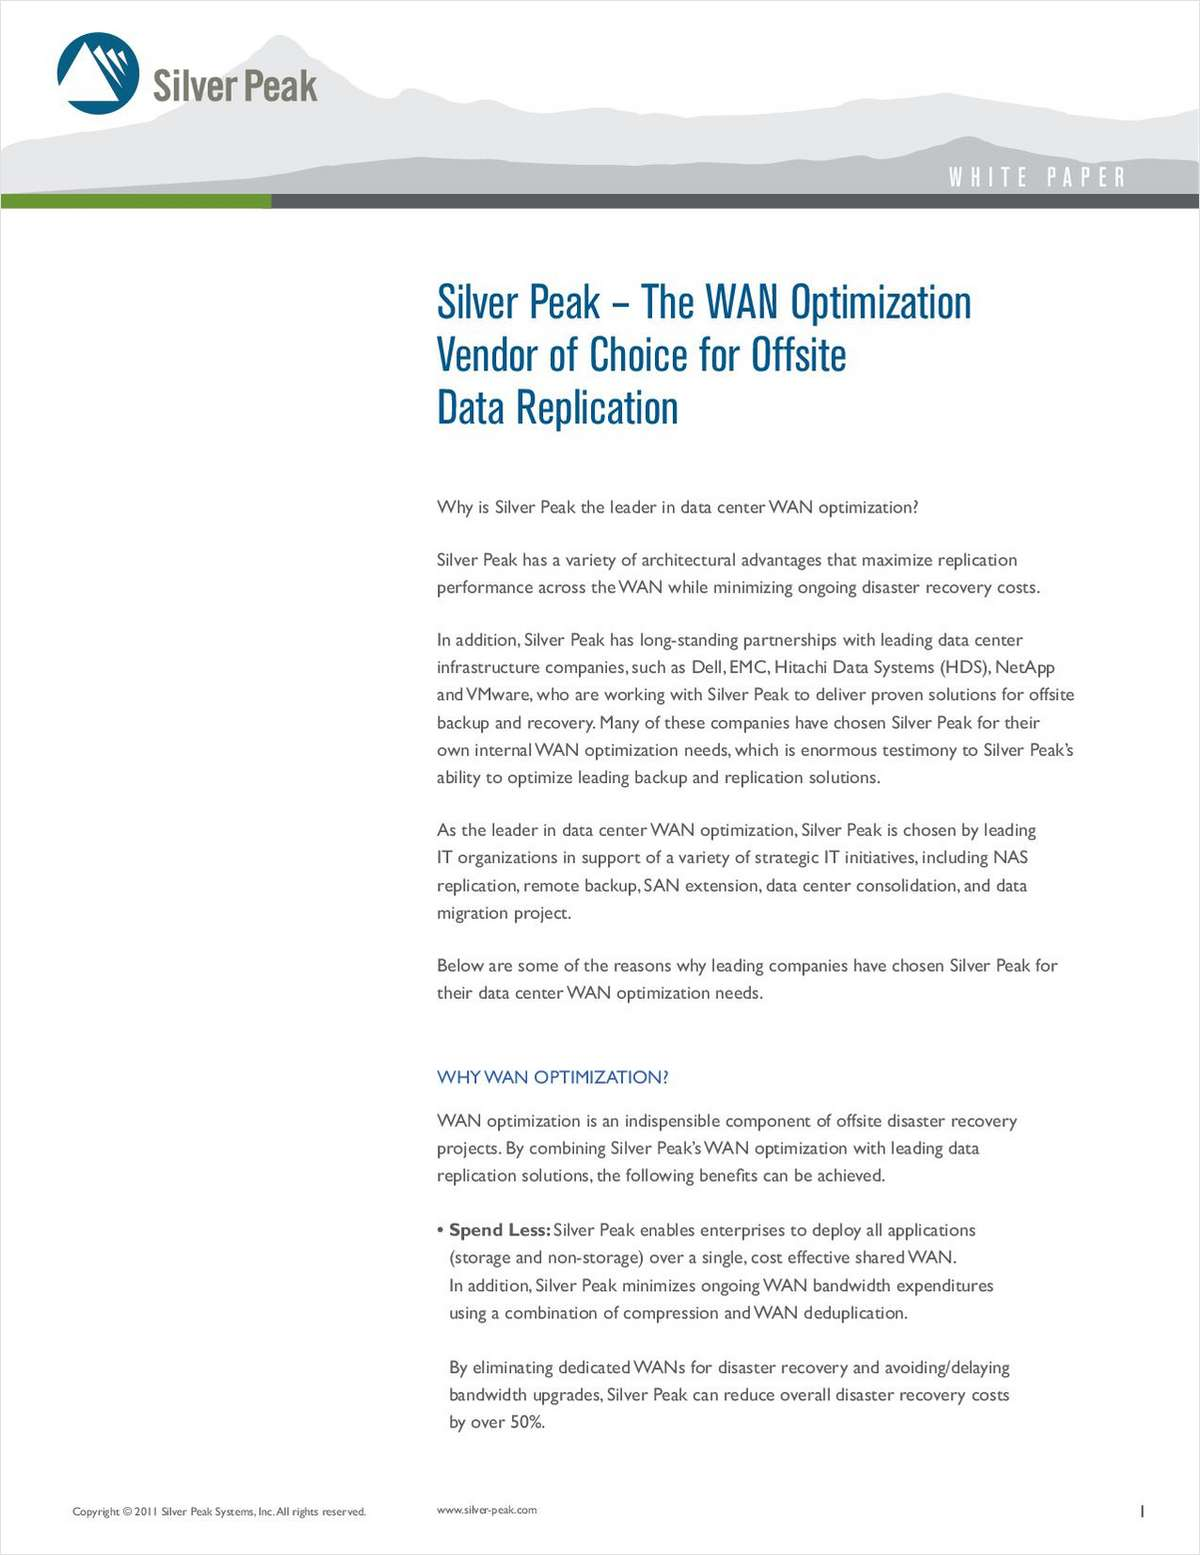 Silver Peak's Advantages in a Disaster Recovery Environment